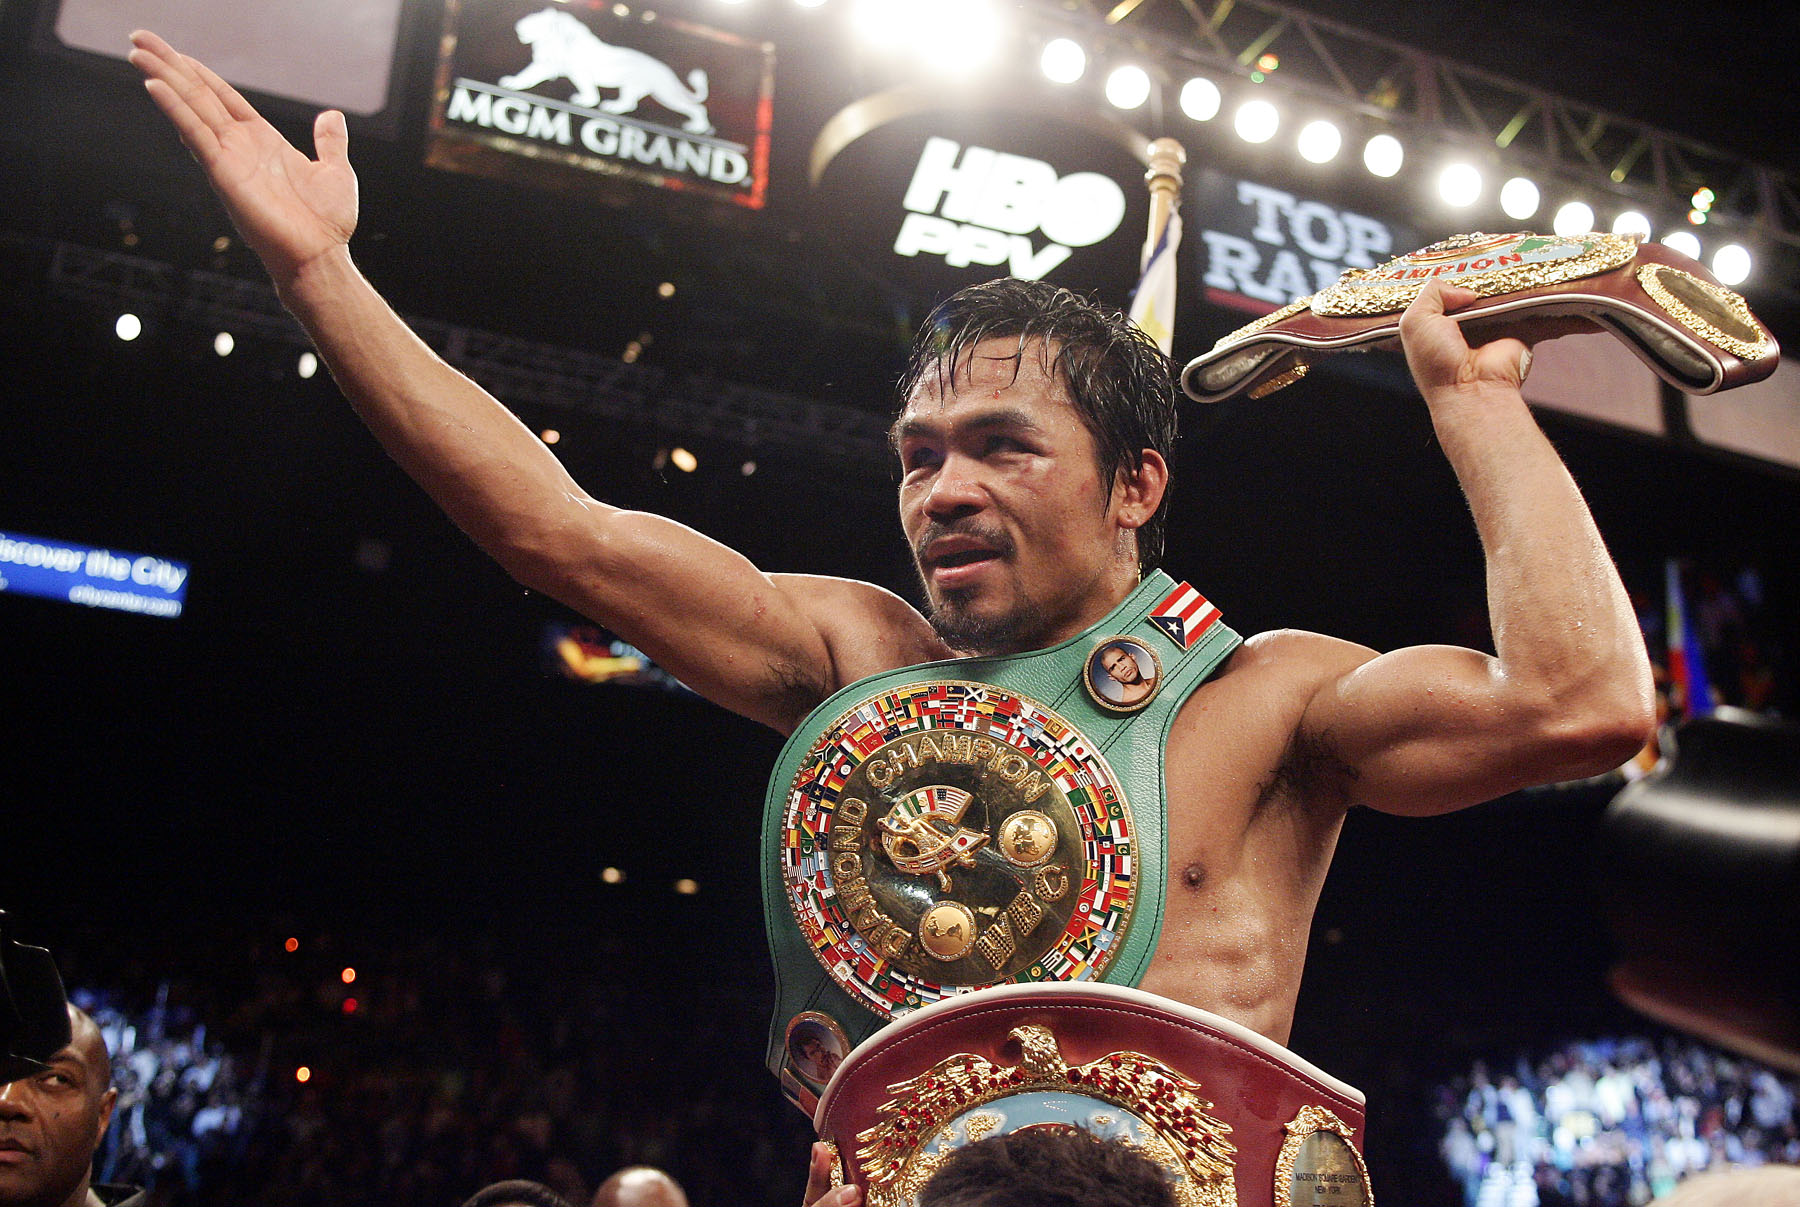 Diego De La Hoya 625778 W in addition Carcollectiongallery in addition Staples Center besides Watch moreover Kid Kulafu The New Pacquiao Film. on oscar de la hoya